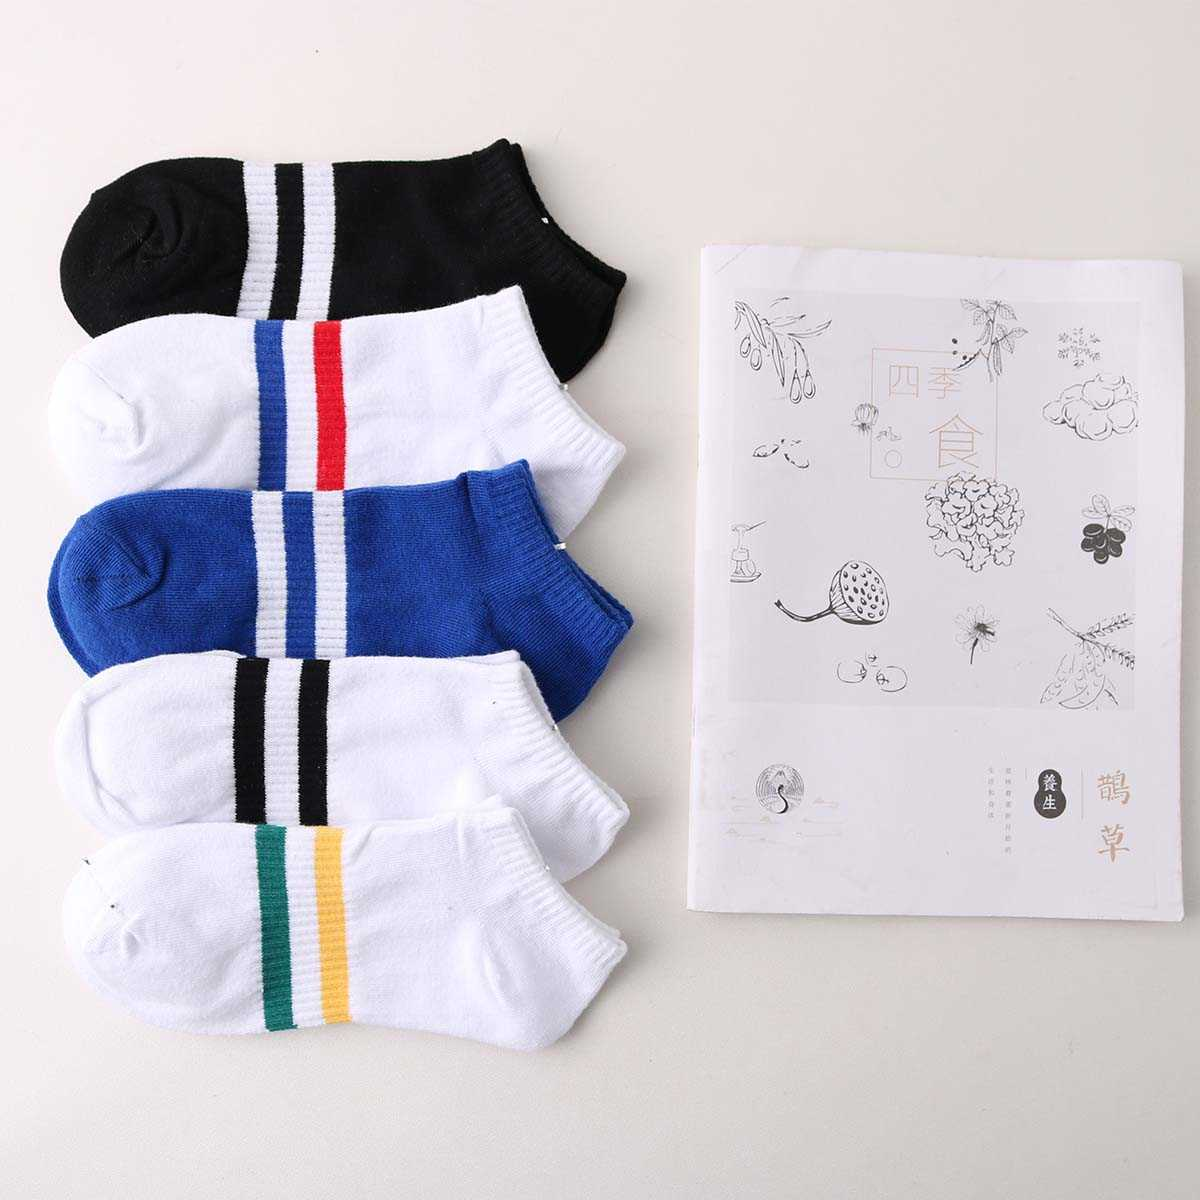 Striped Ankle Socks 5pairs in Multicolor by ROMWE on GOOFASH